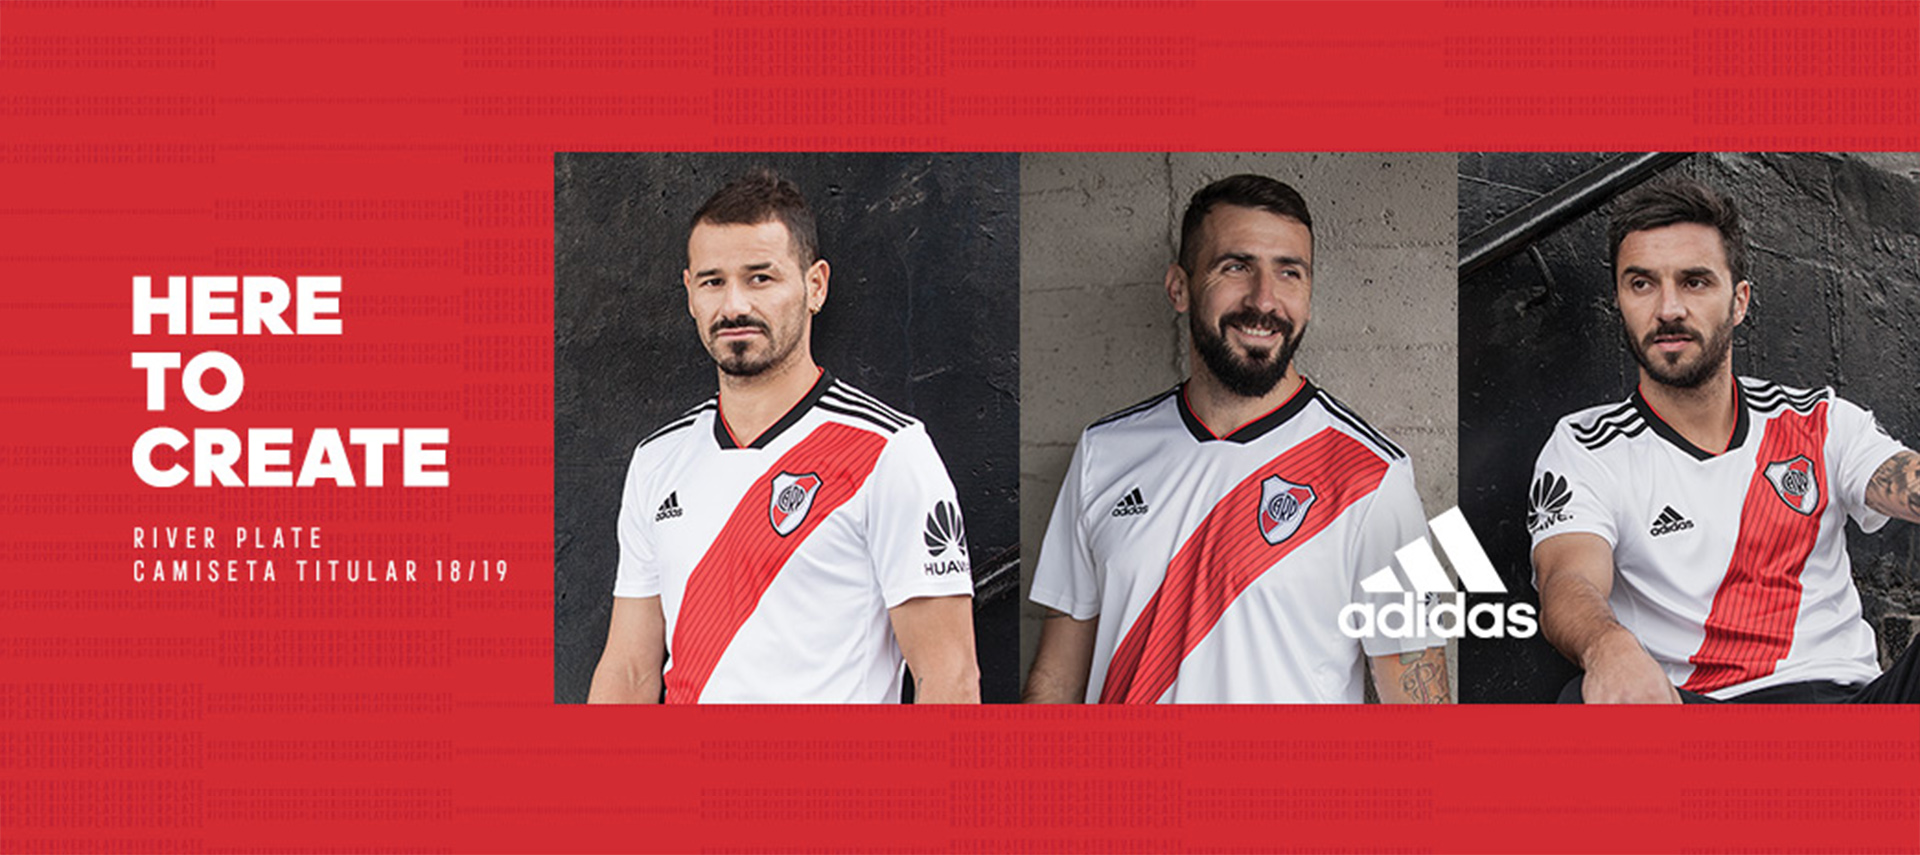 RIVER PLATE 18/19